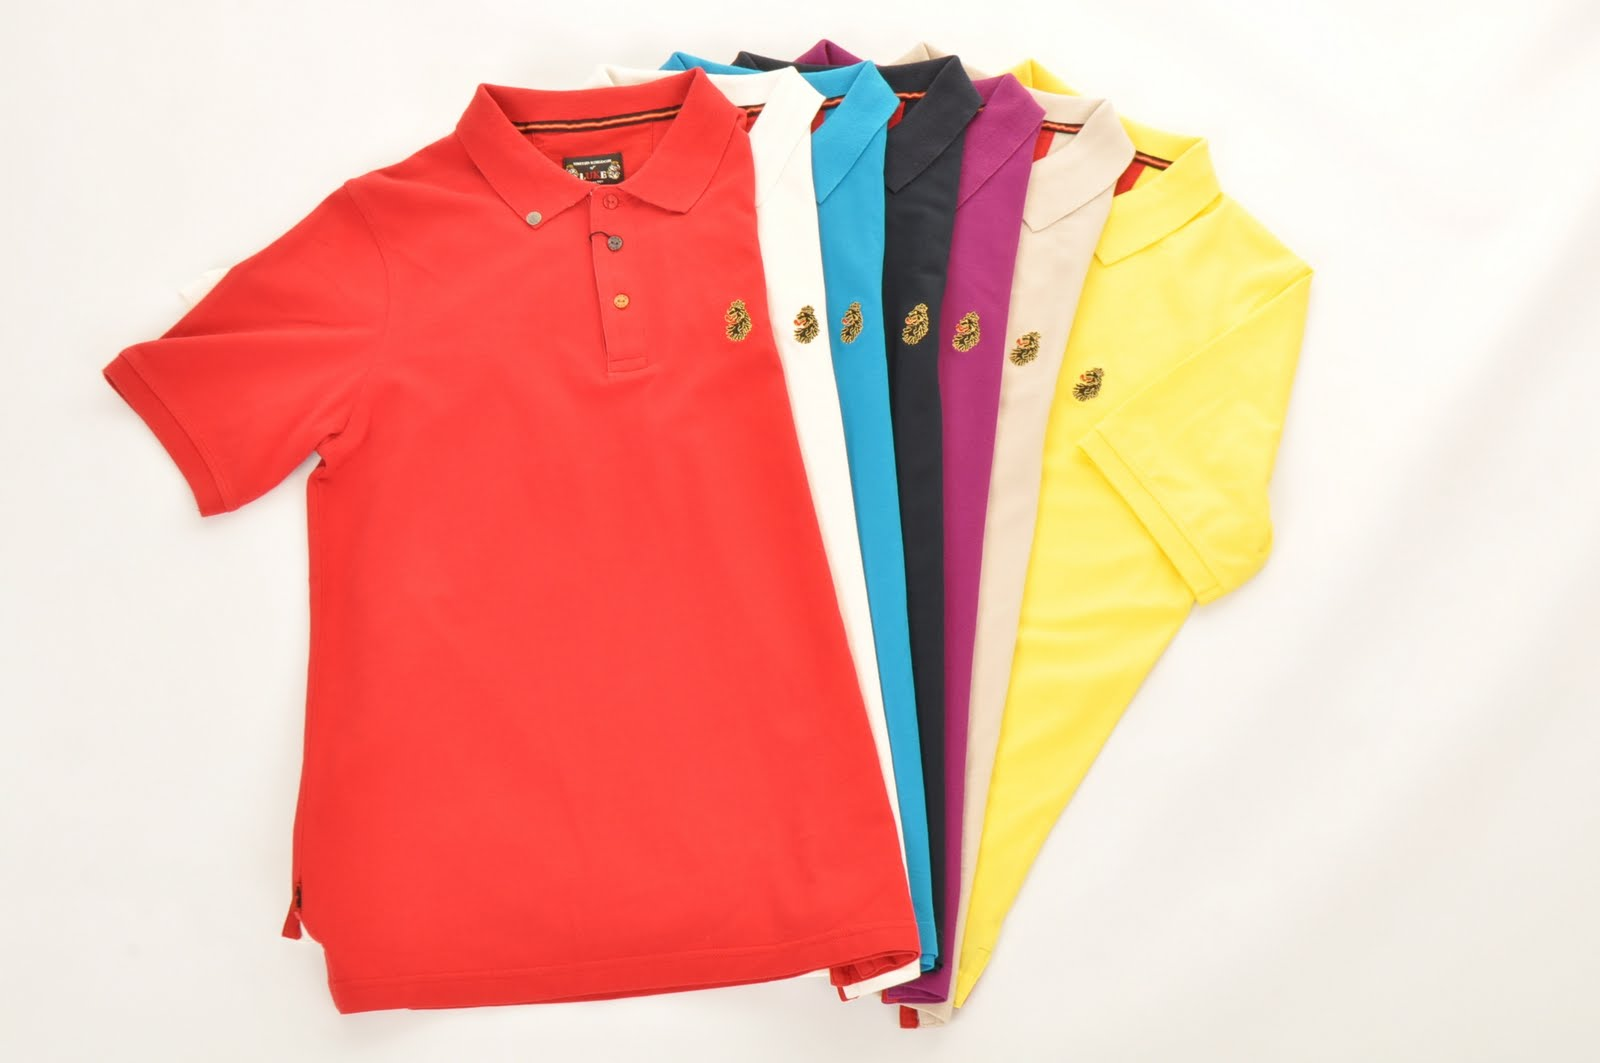 Polo T Shirts How To Care For Your Favourite Polo T Shirt